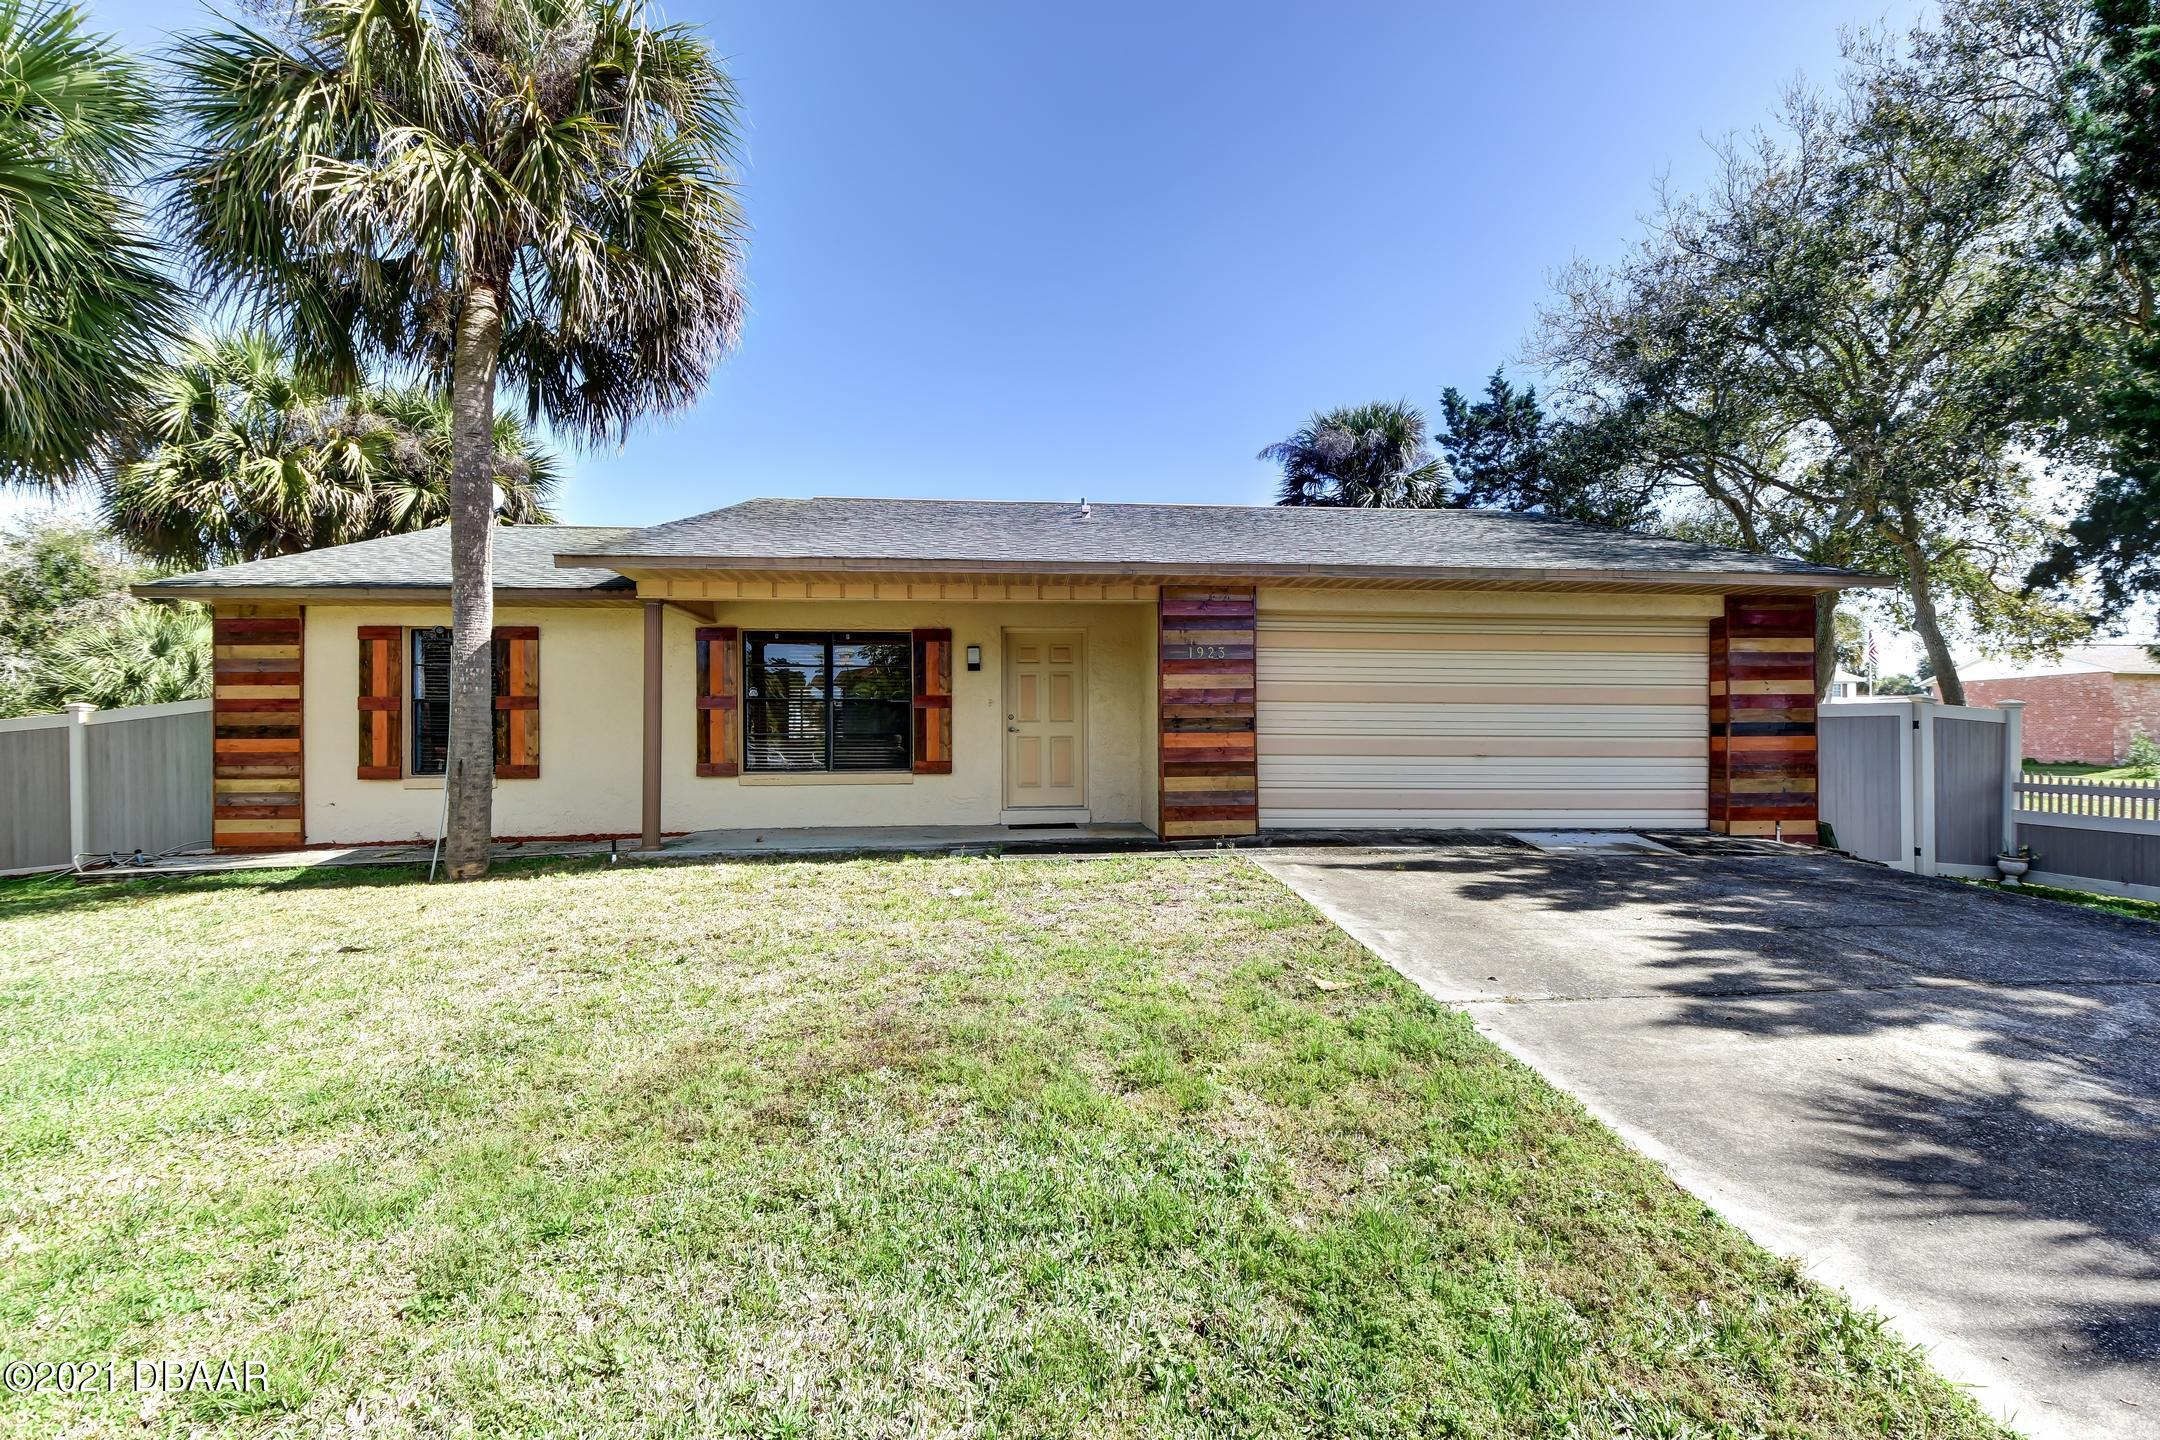 Listing Details for 1923 Palmetto Avenue, South Daytona, FL 32119